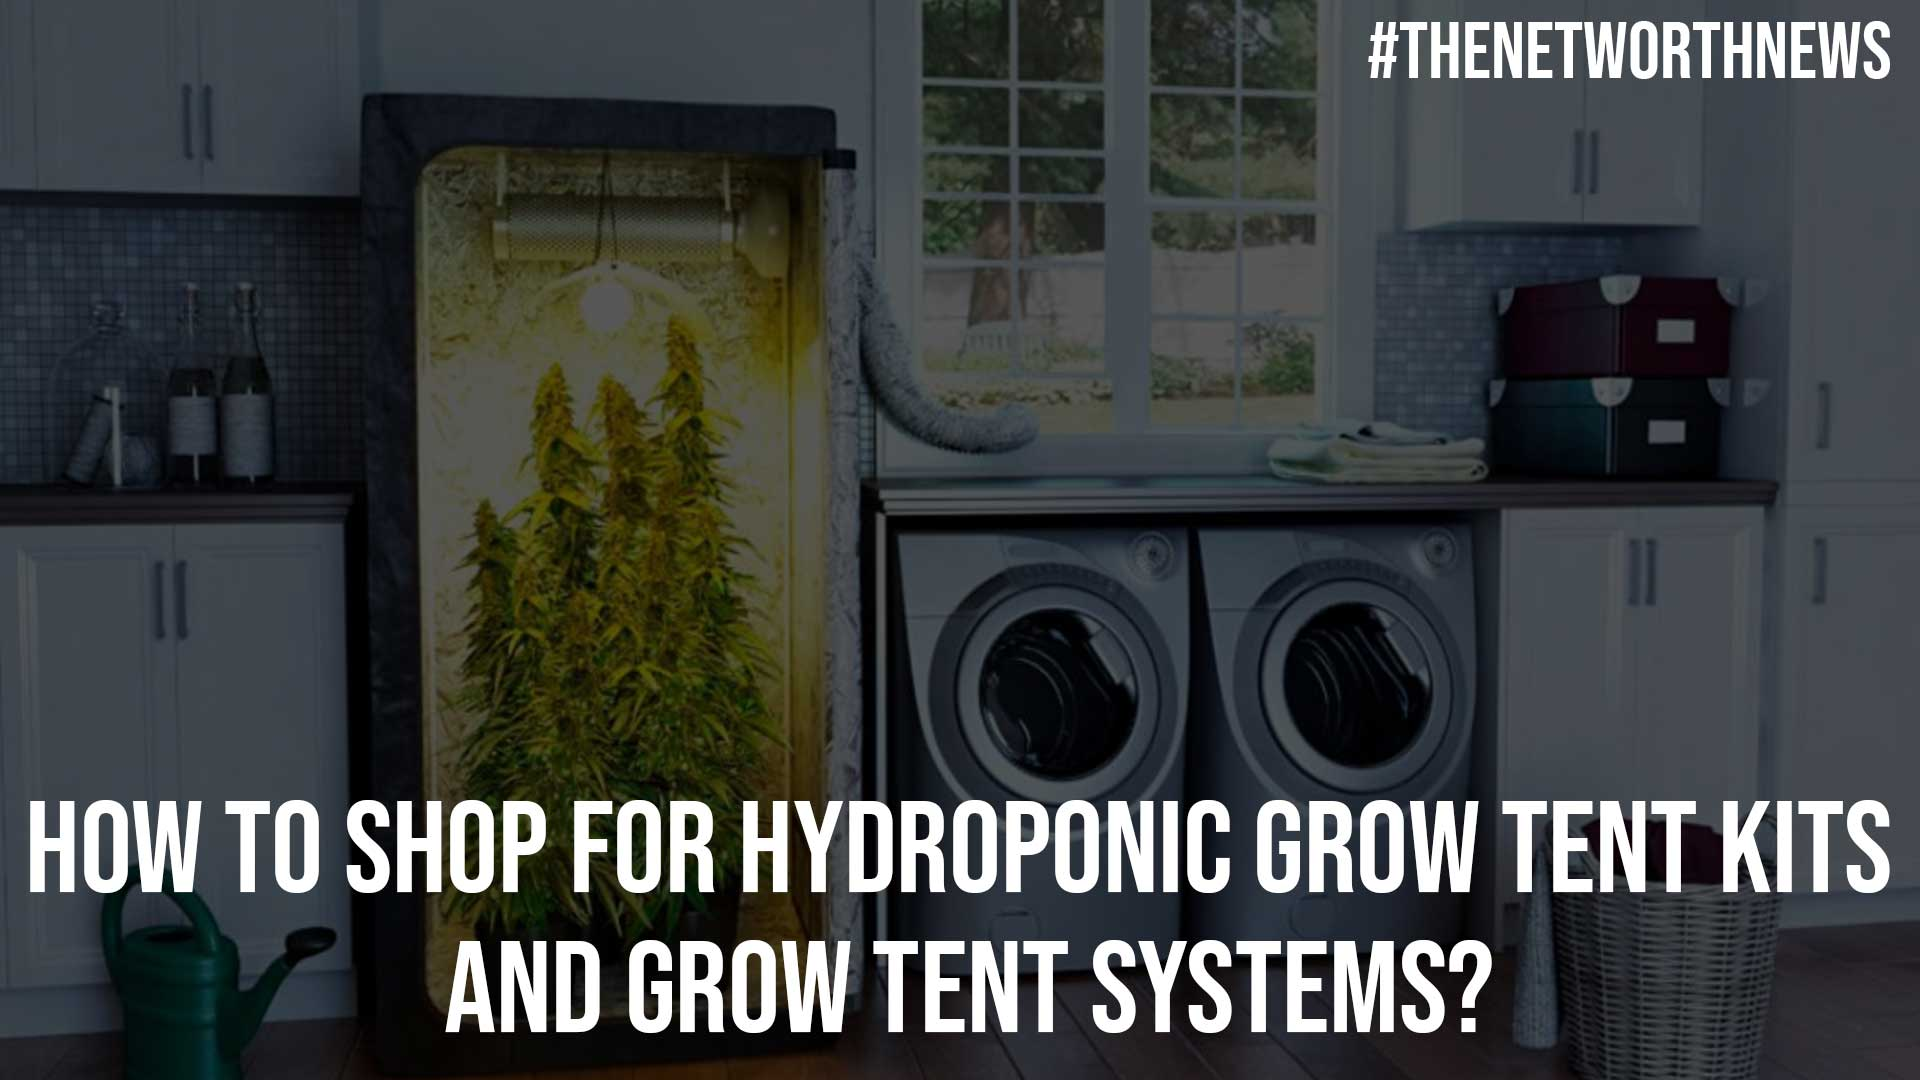 How to Shop for Hydroponic Grow Tent Kits and Grow Tent Systems